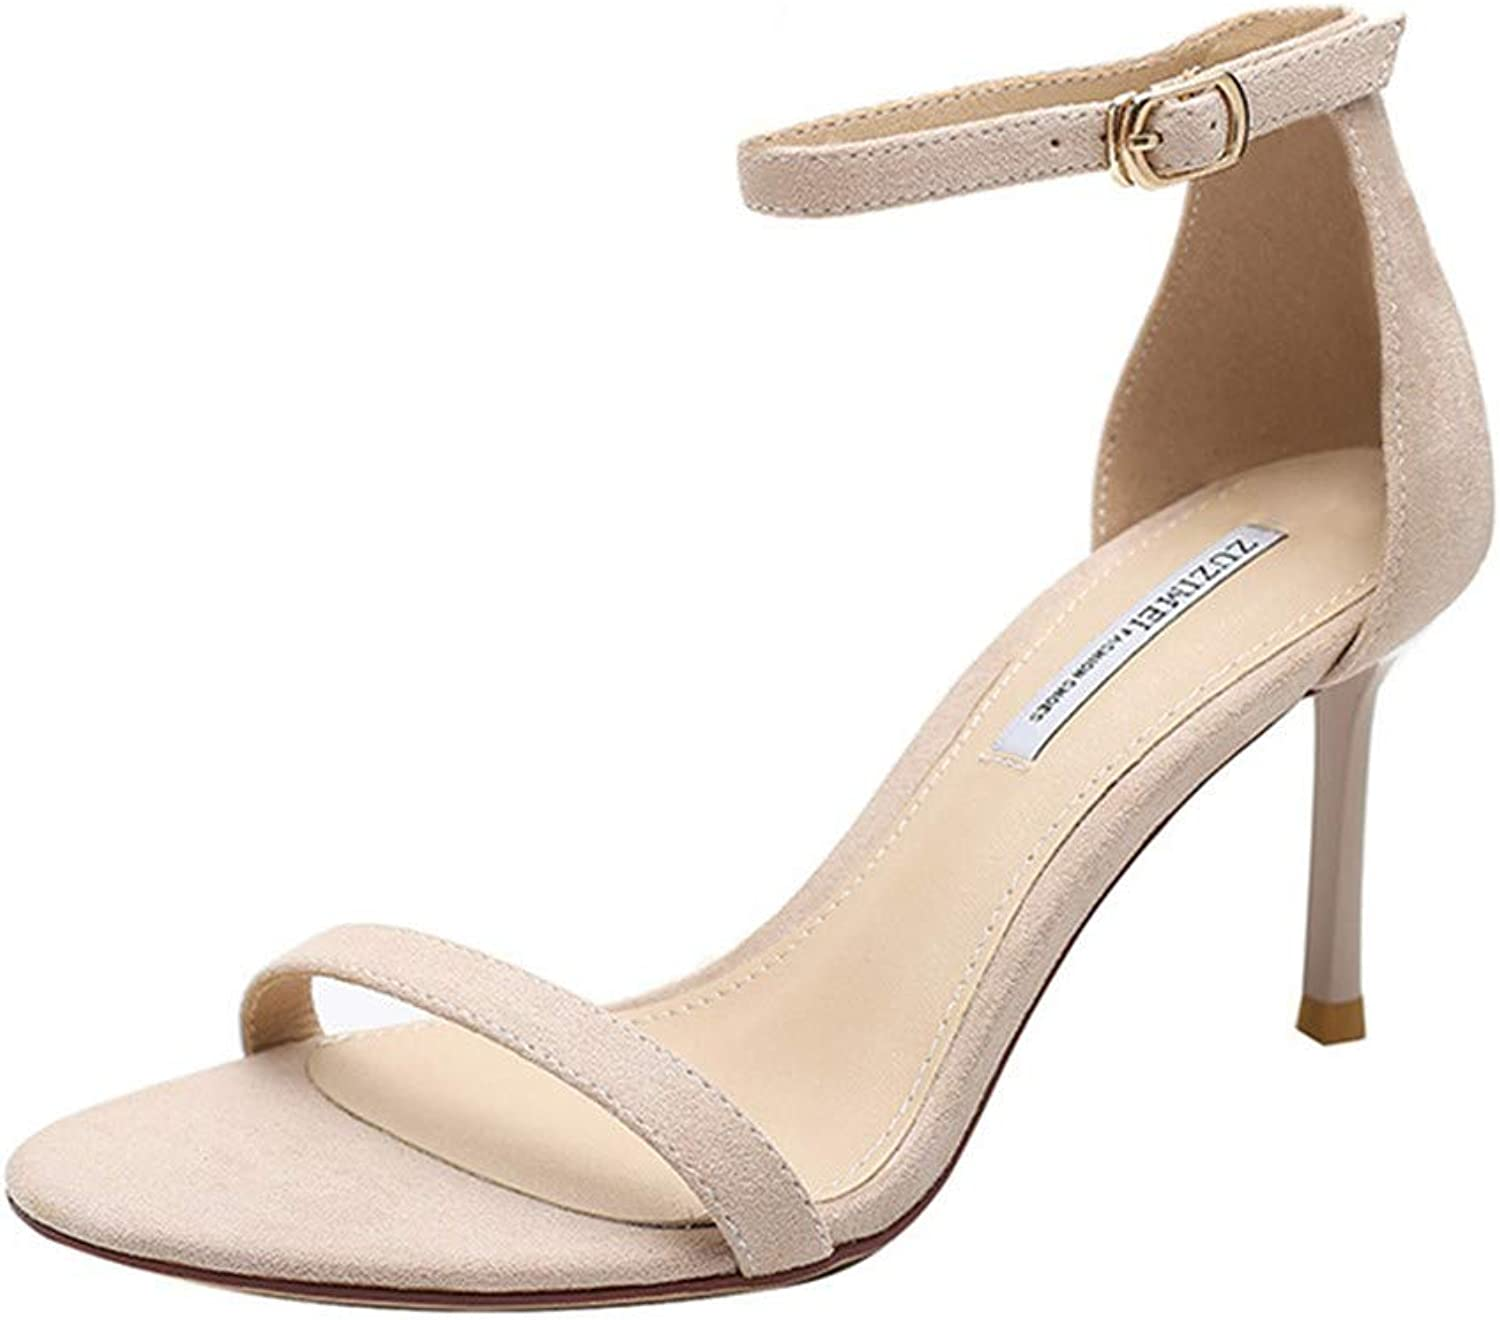 Womens Fashion Peep Toe High Heels Platforms Thin Heels Sandals Party shoes Apricot